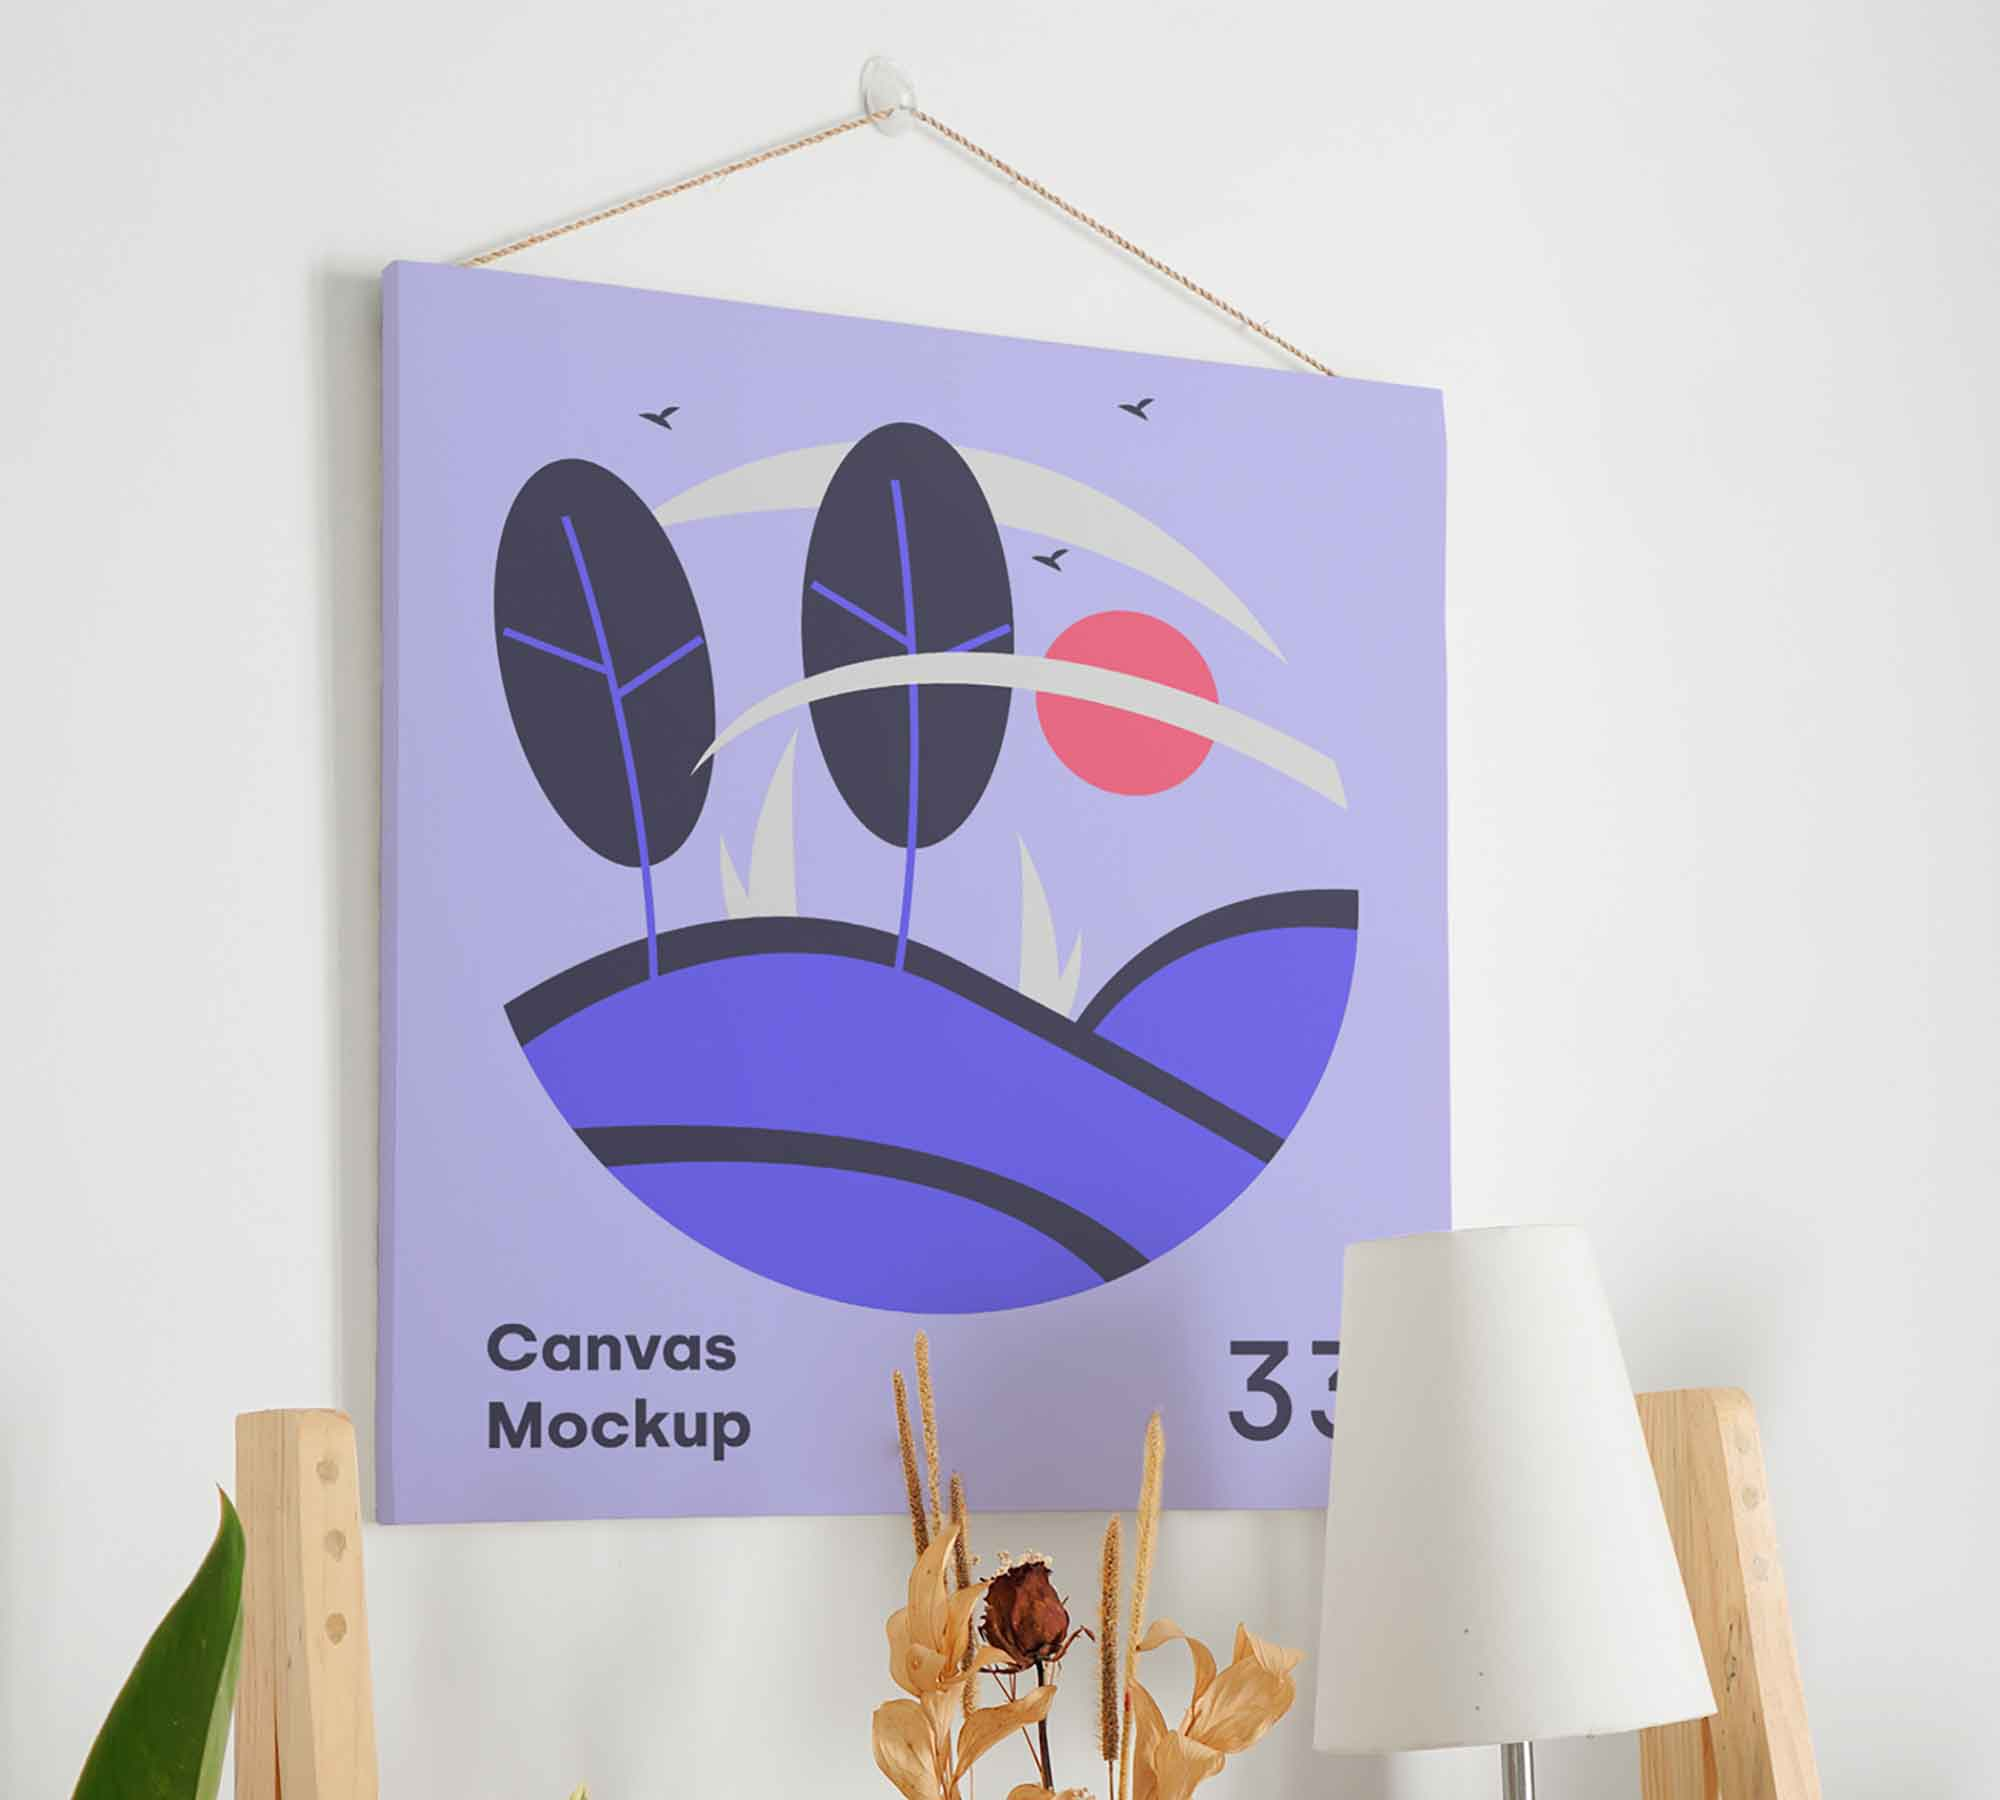 Hanging Canvas Mockup